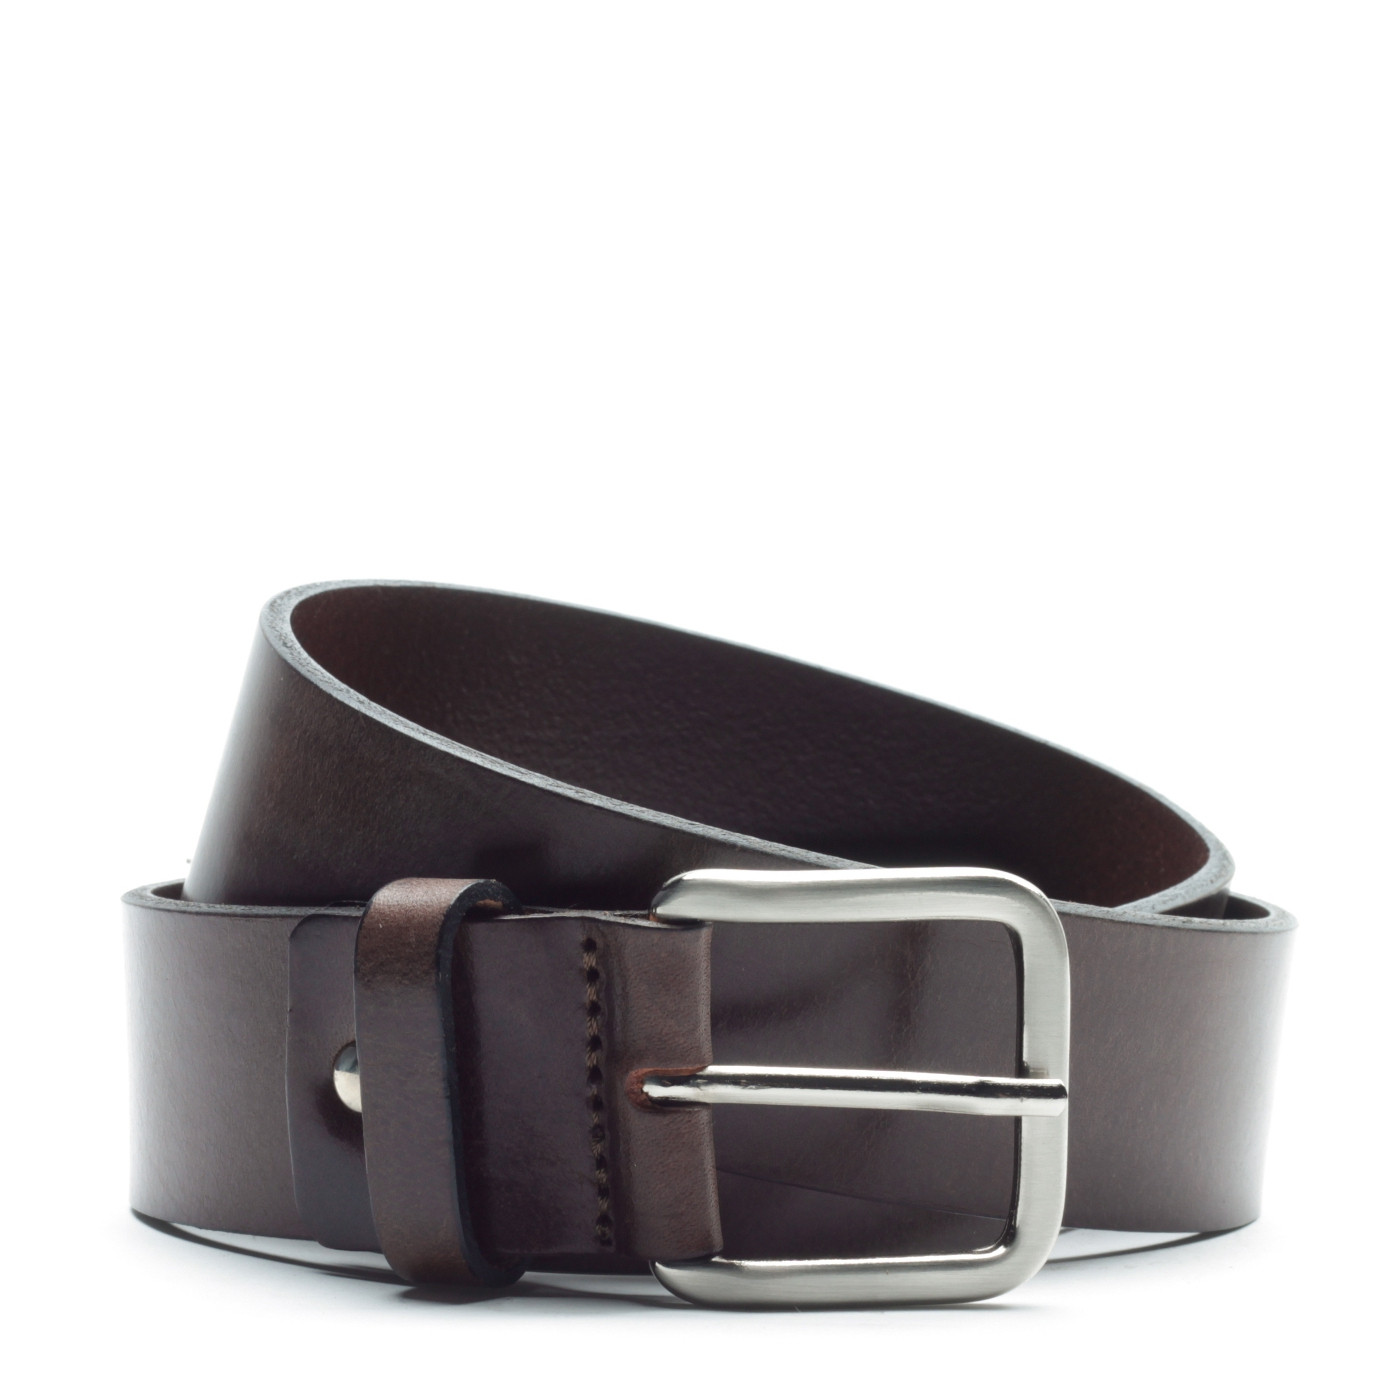 Royal RepubliQ Limit Bruin Heren Riem 16562-3802